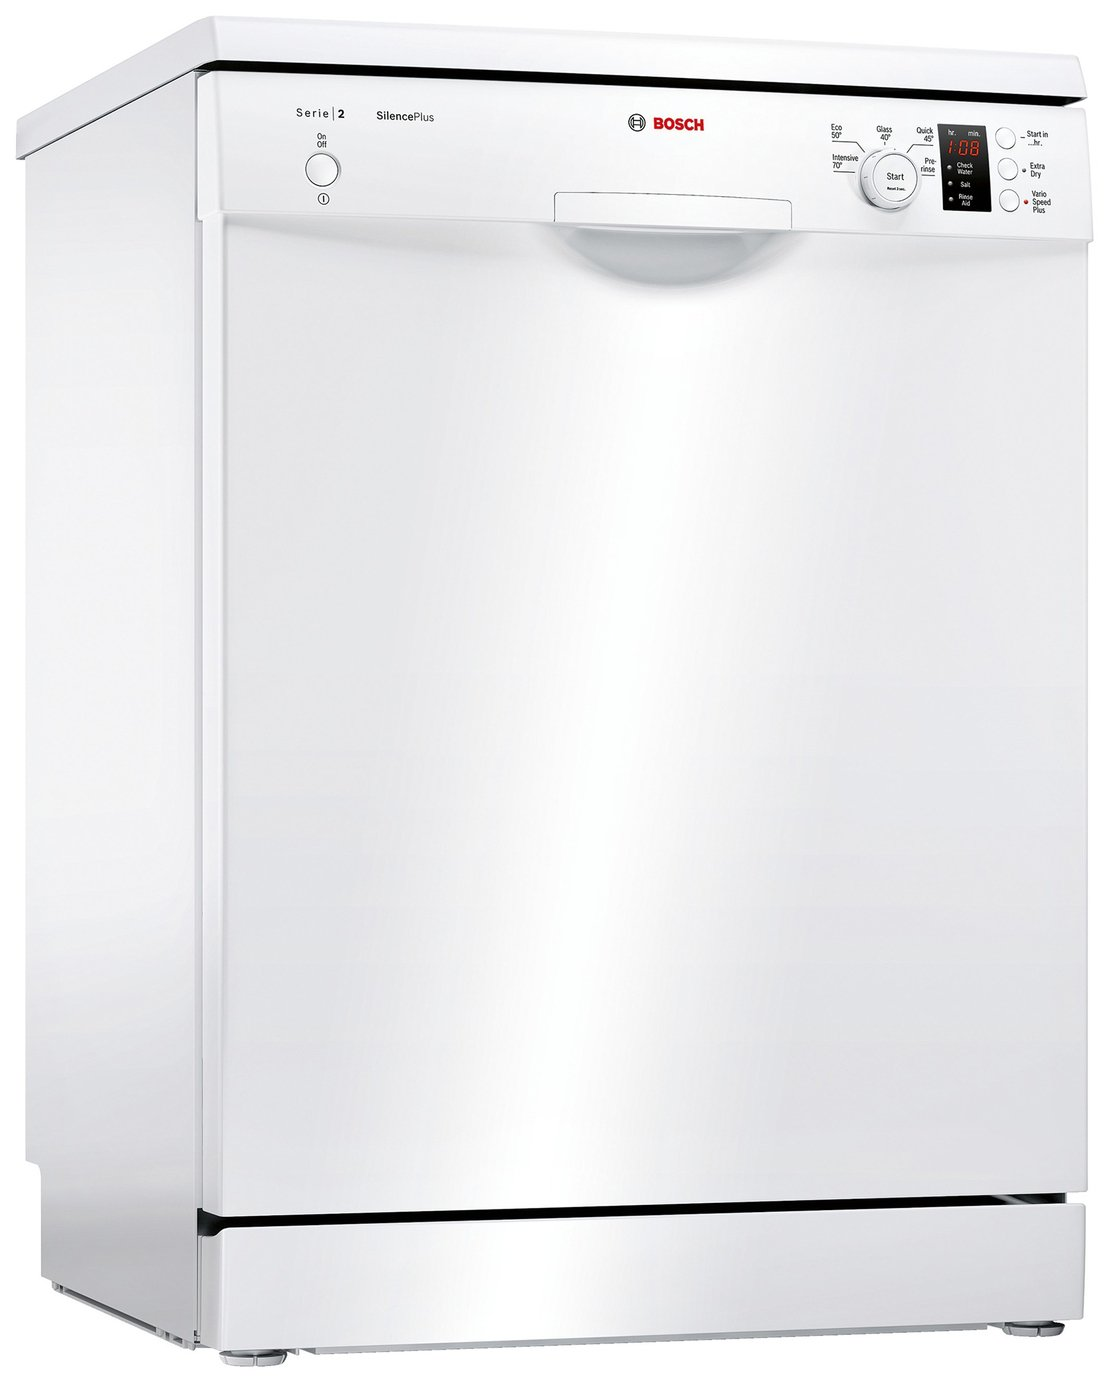 Bosch SMS25AW00G Full Size Dishwasher - White from Bosch